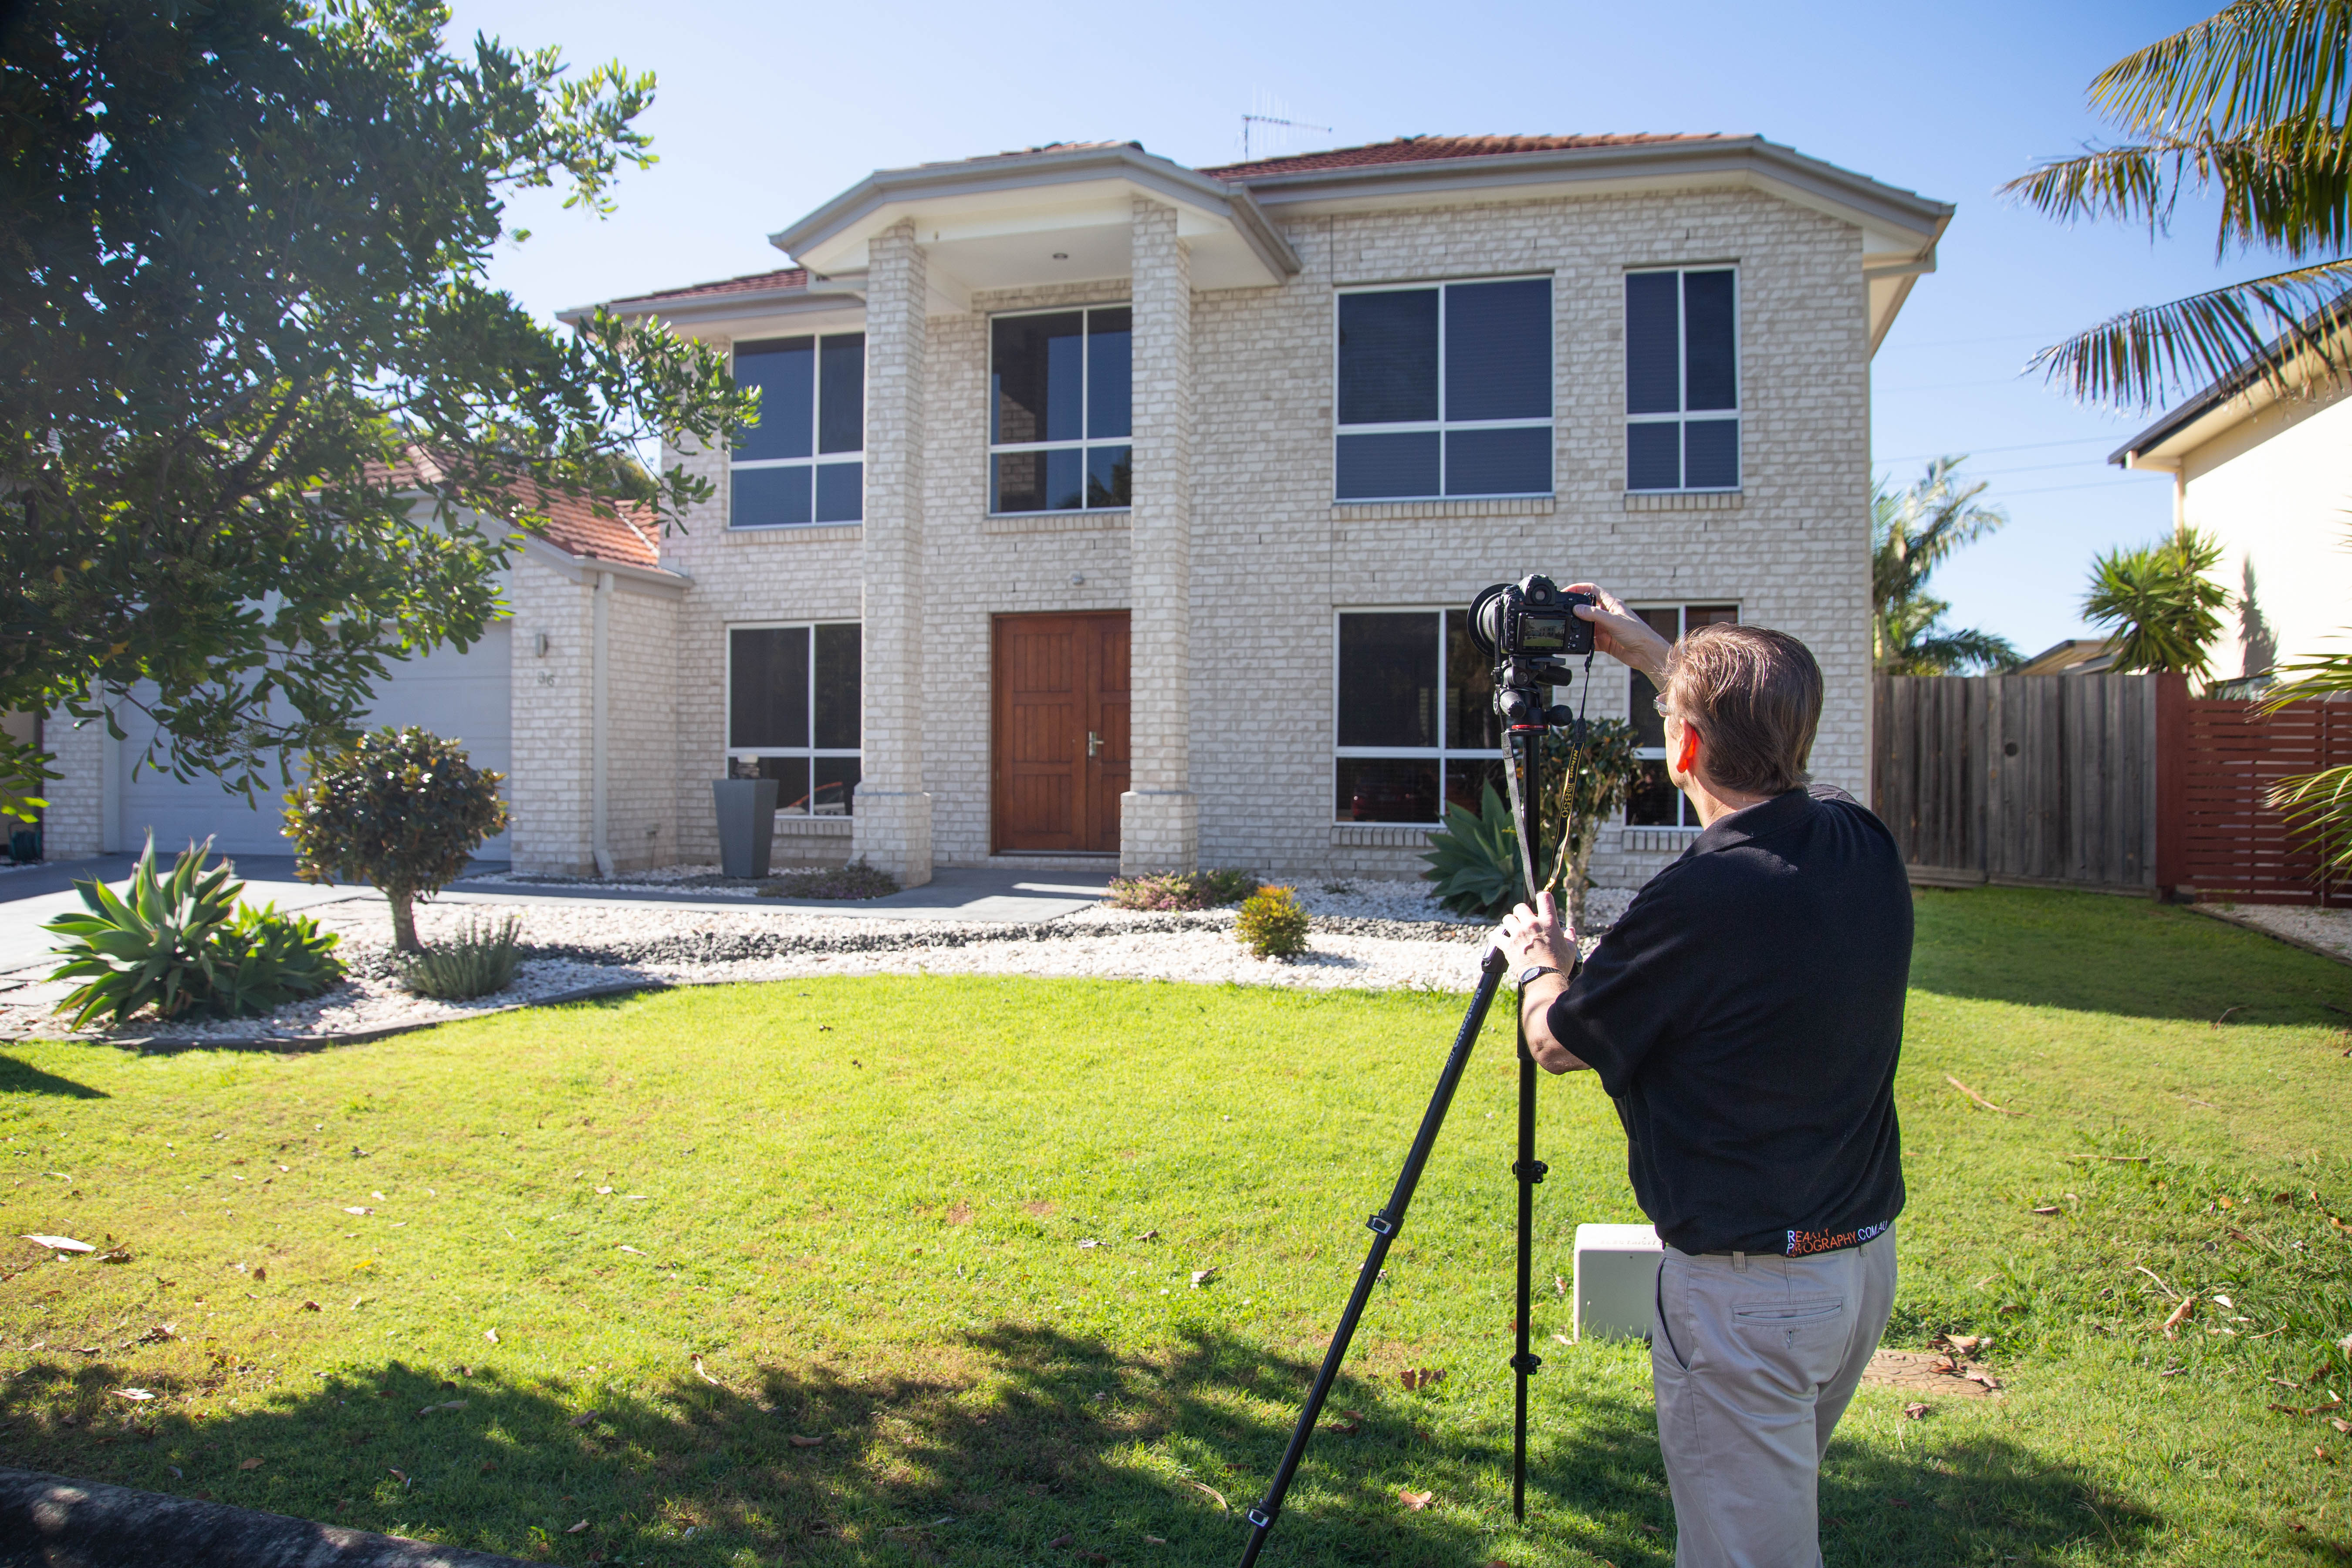 Professional Visual Marketing Services - Real Estate Photography Franchise!